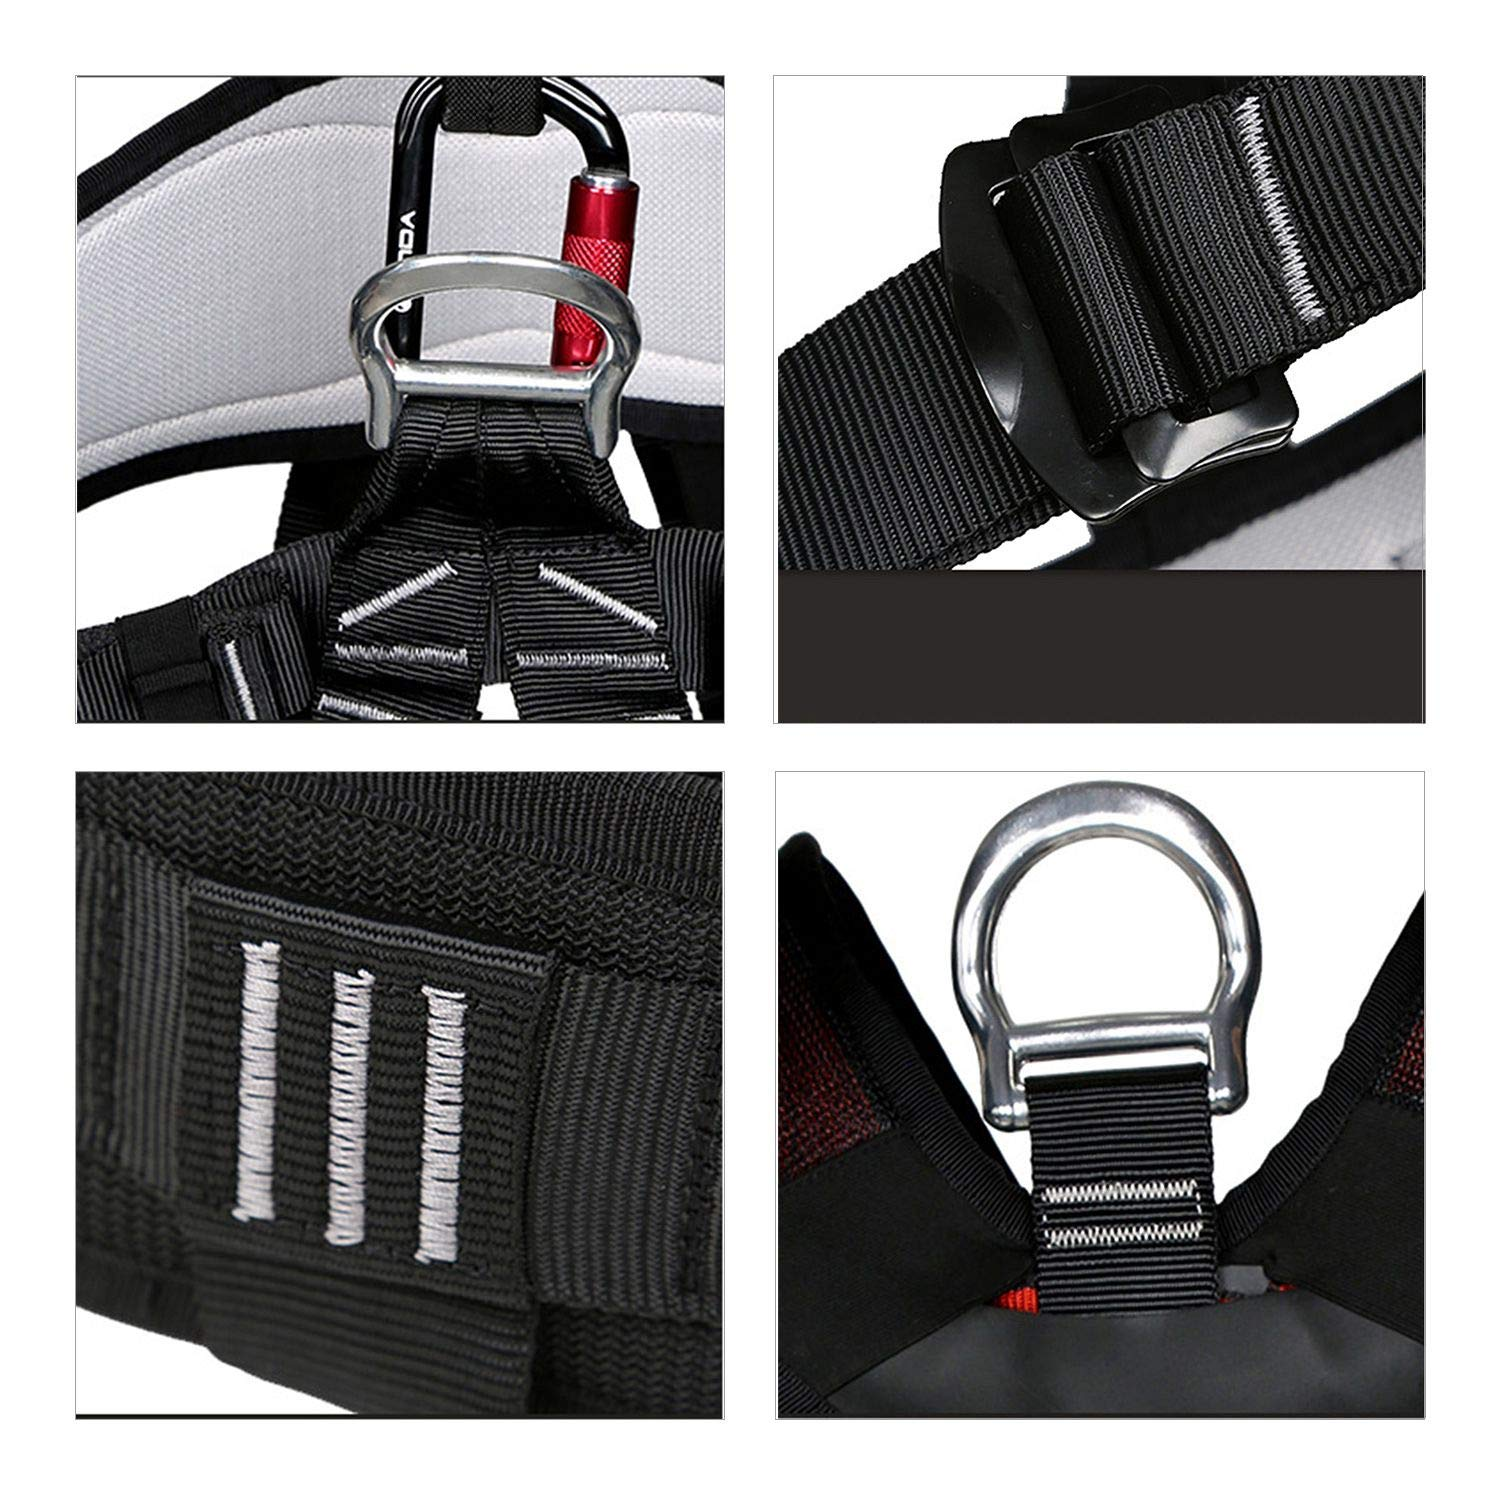 SODIAL Outdoor Climbing Rock Rappelling Mountaineering Accessories Body Wearing Seat Belt Sitting Waist Bust Protection by SODIAL (Image #6)